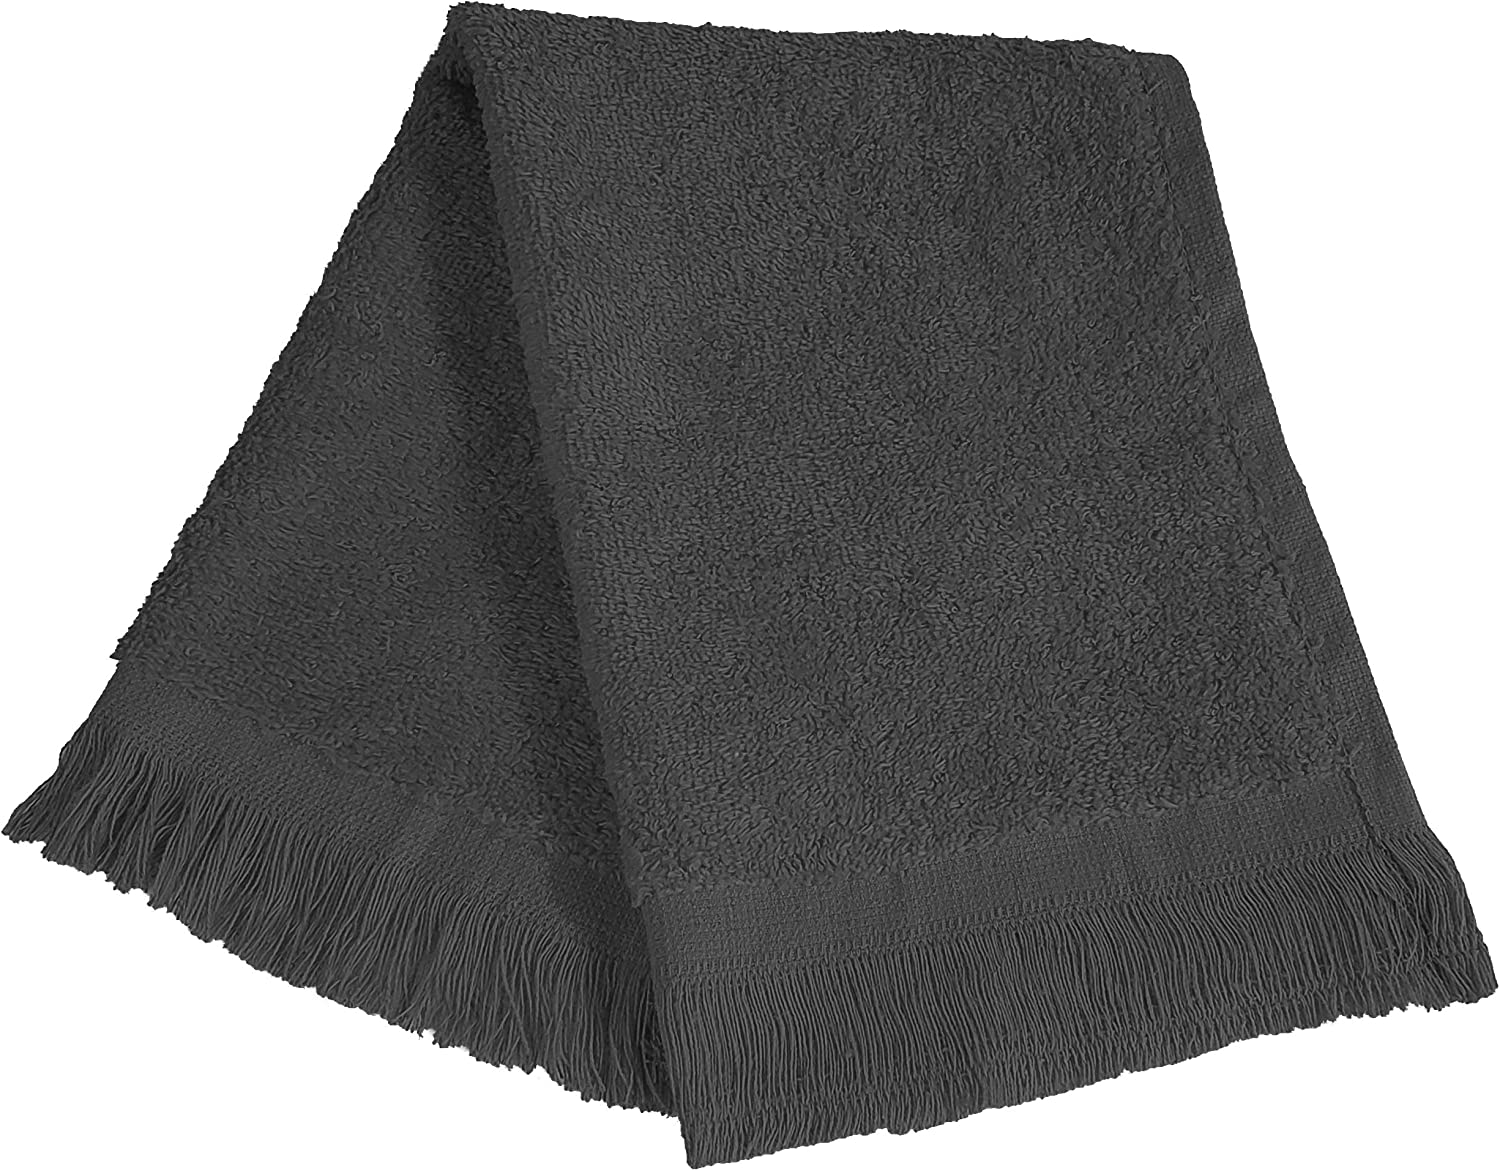 (12 Pack) Set of 12- Promotional Priced Fingertip Towels (Black) 812BVMcsf9TL